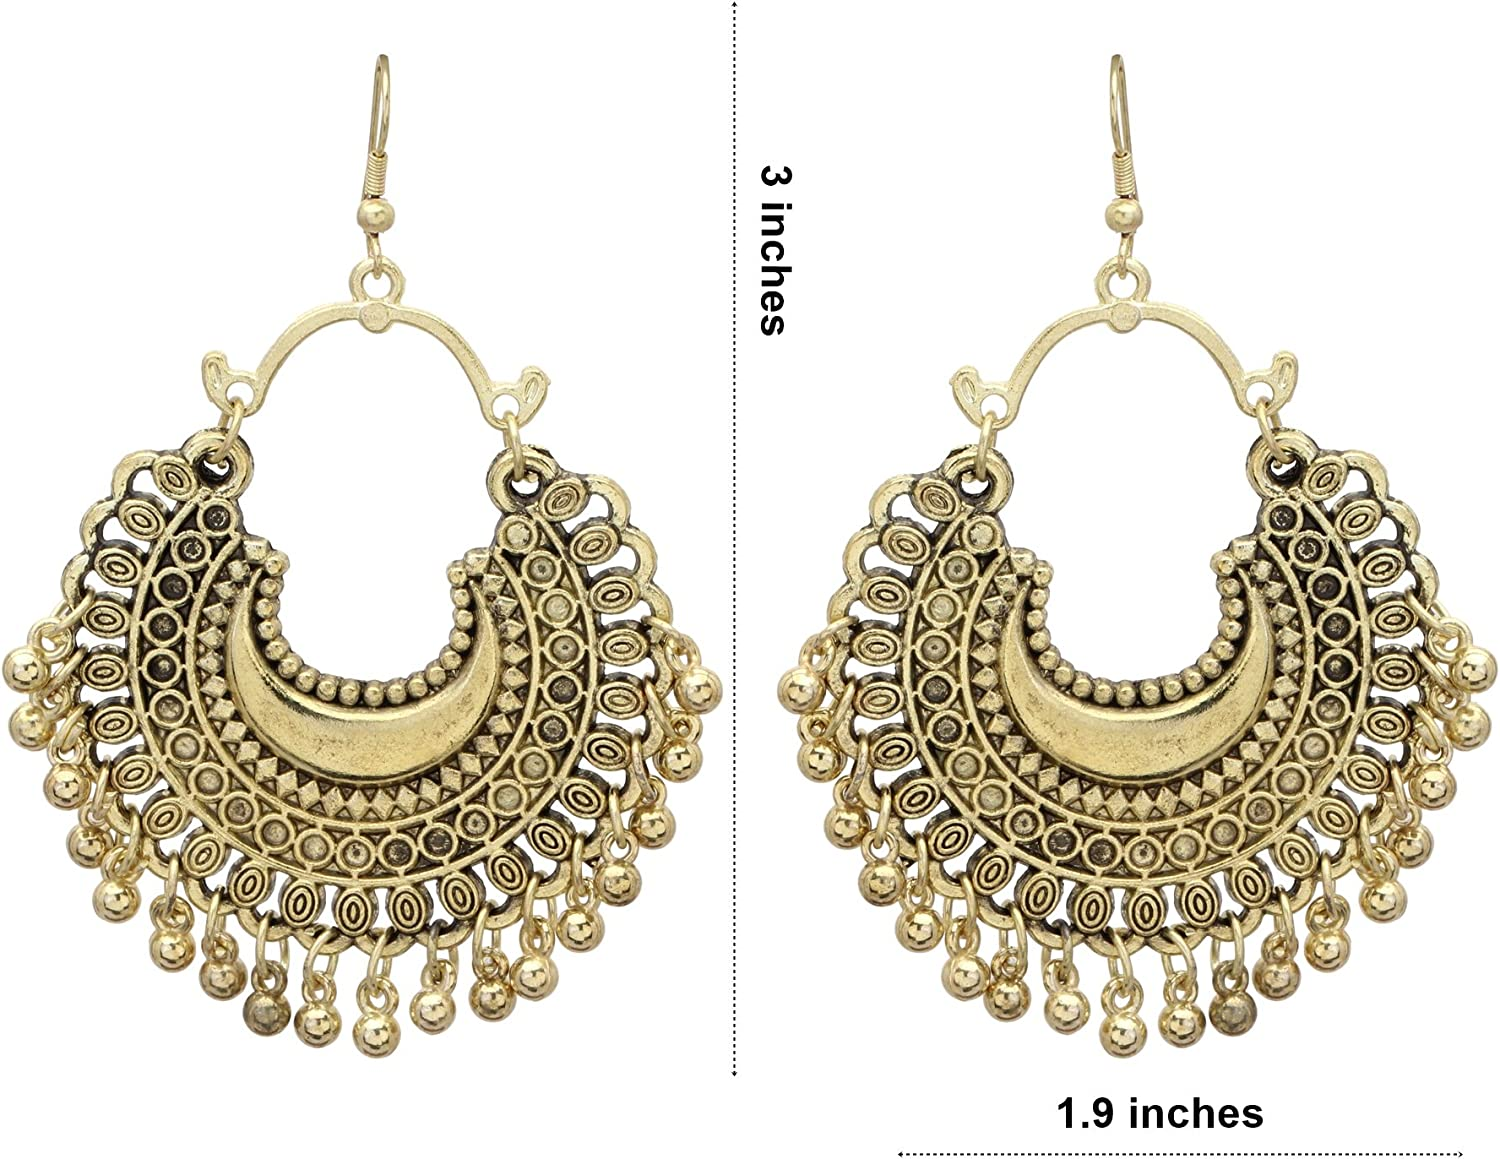 Jwellmart Afghani Bohemian Tribal Oxidized Silver Drop Dangle Indian Earrings for Women and Girls